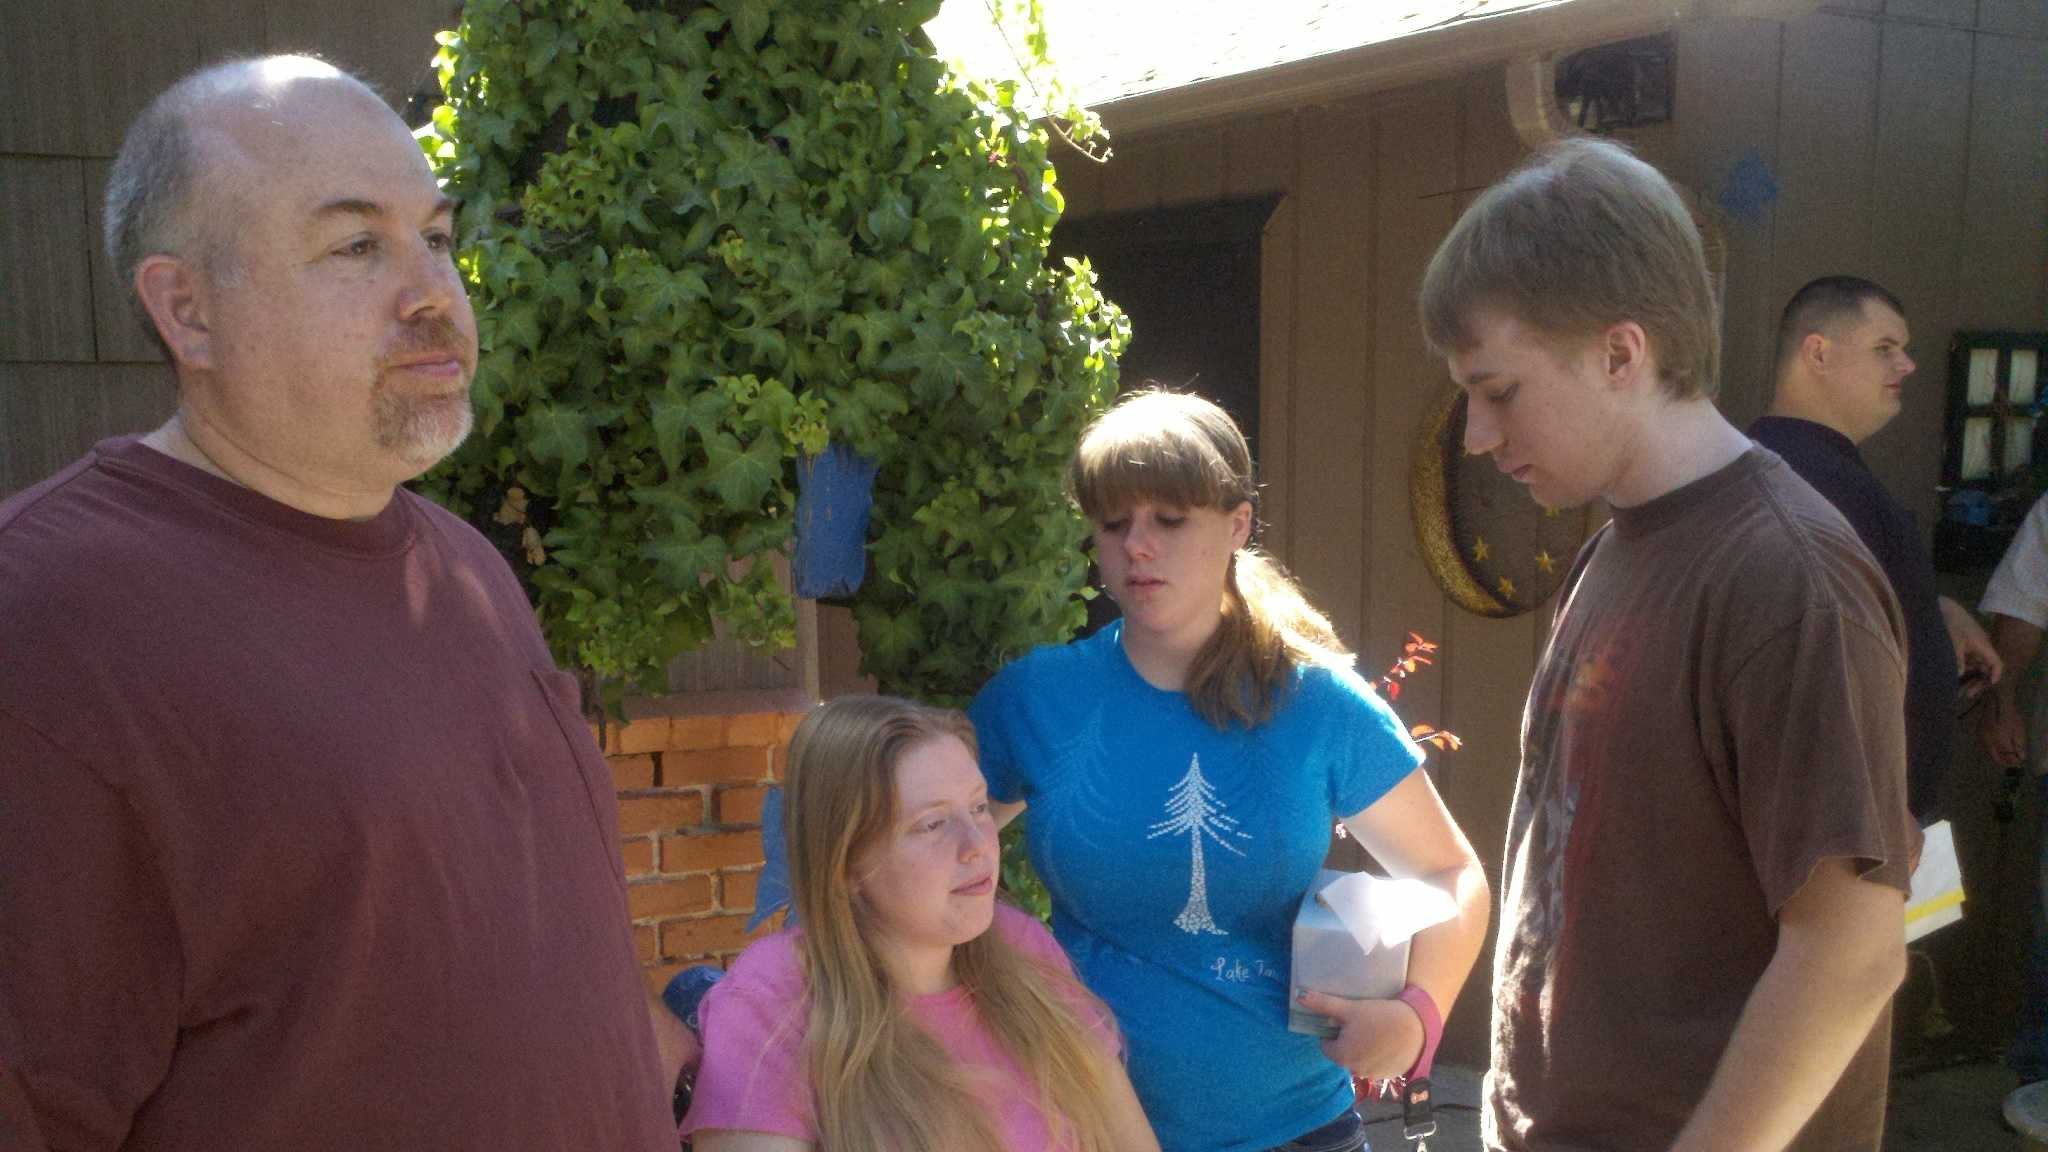 West, seated, is next to her her niece and nephew. Her older brother, Trevor West, stands in the forefront. Walden was suspected of drinking and driving when he was arrested last month, three days after the fatal hit-and-run crash. Authorities said by time they made the arrest, it was too late to determine whether he was driving under the influence in the crash that led to Long-Randall's death.